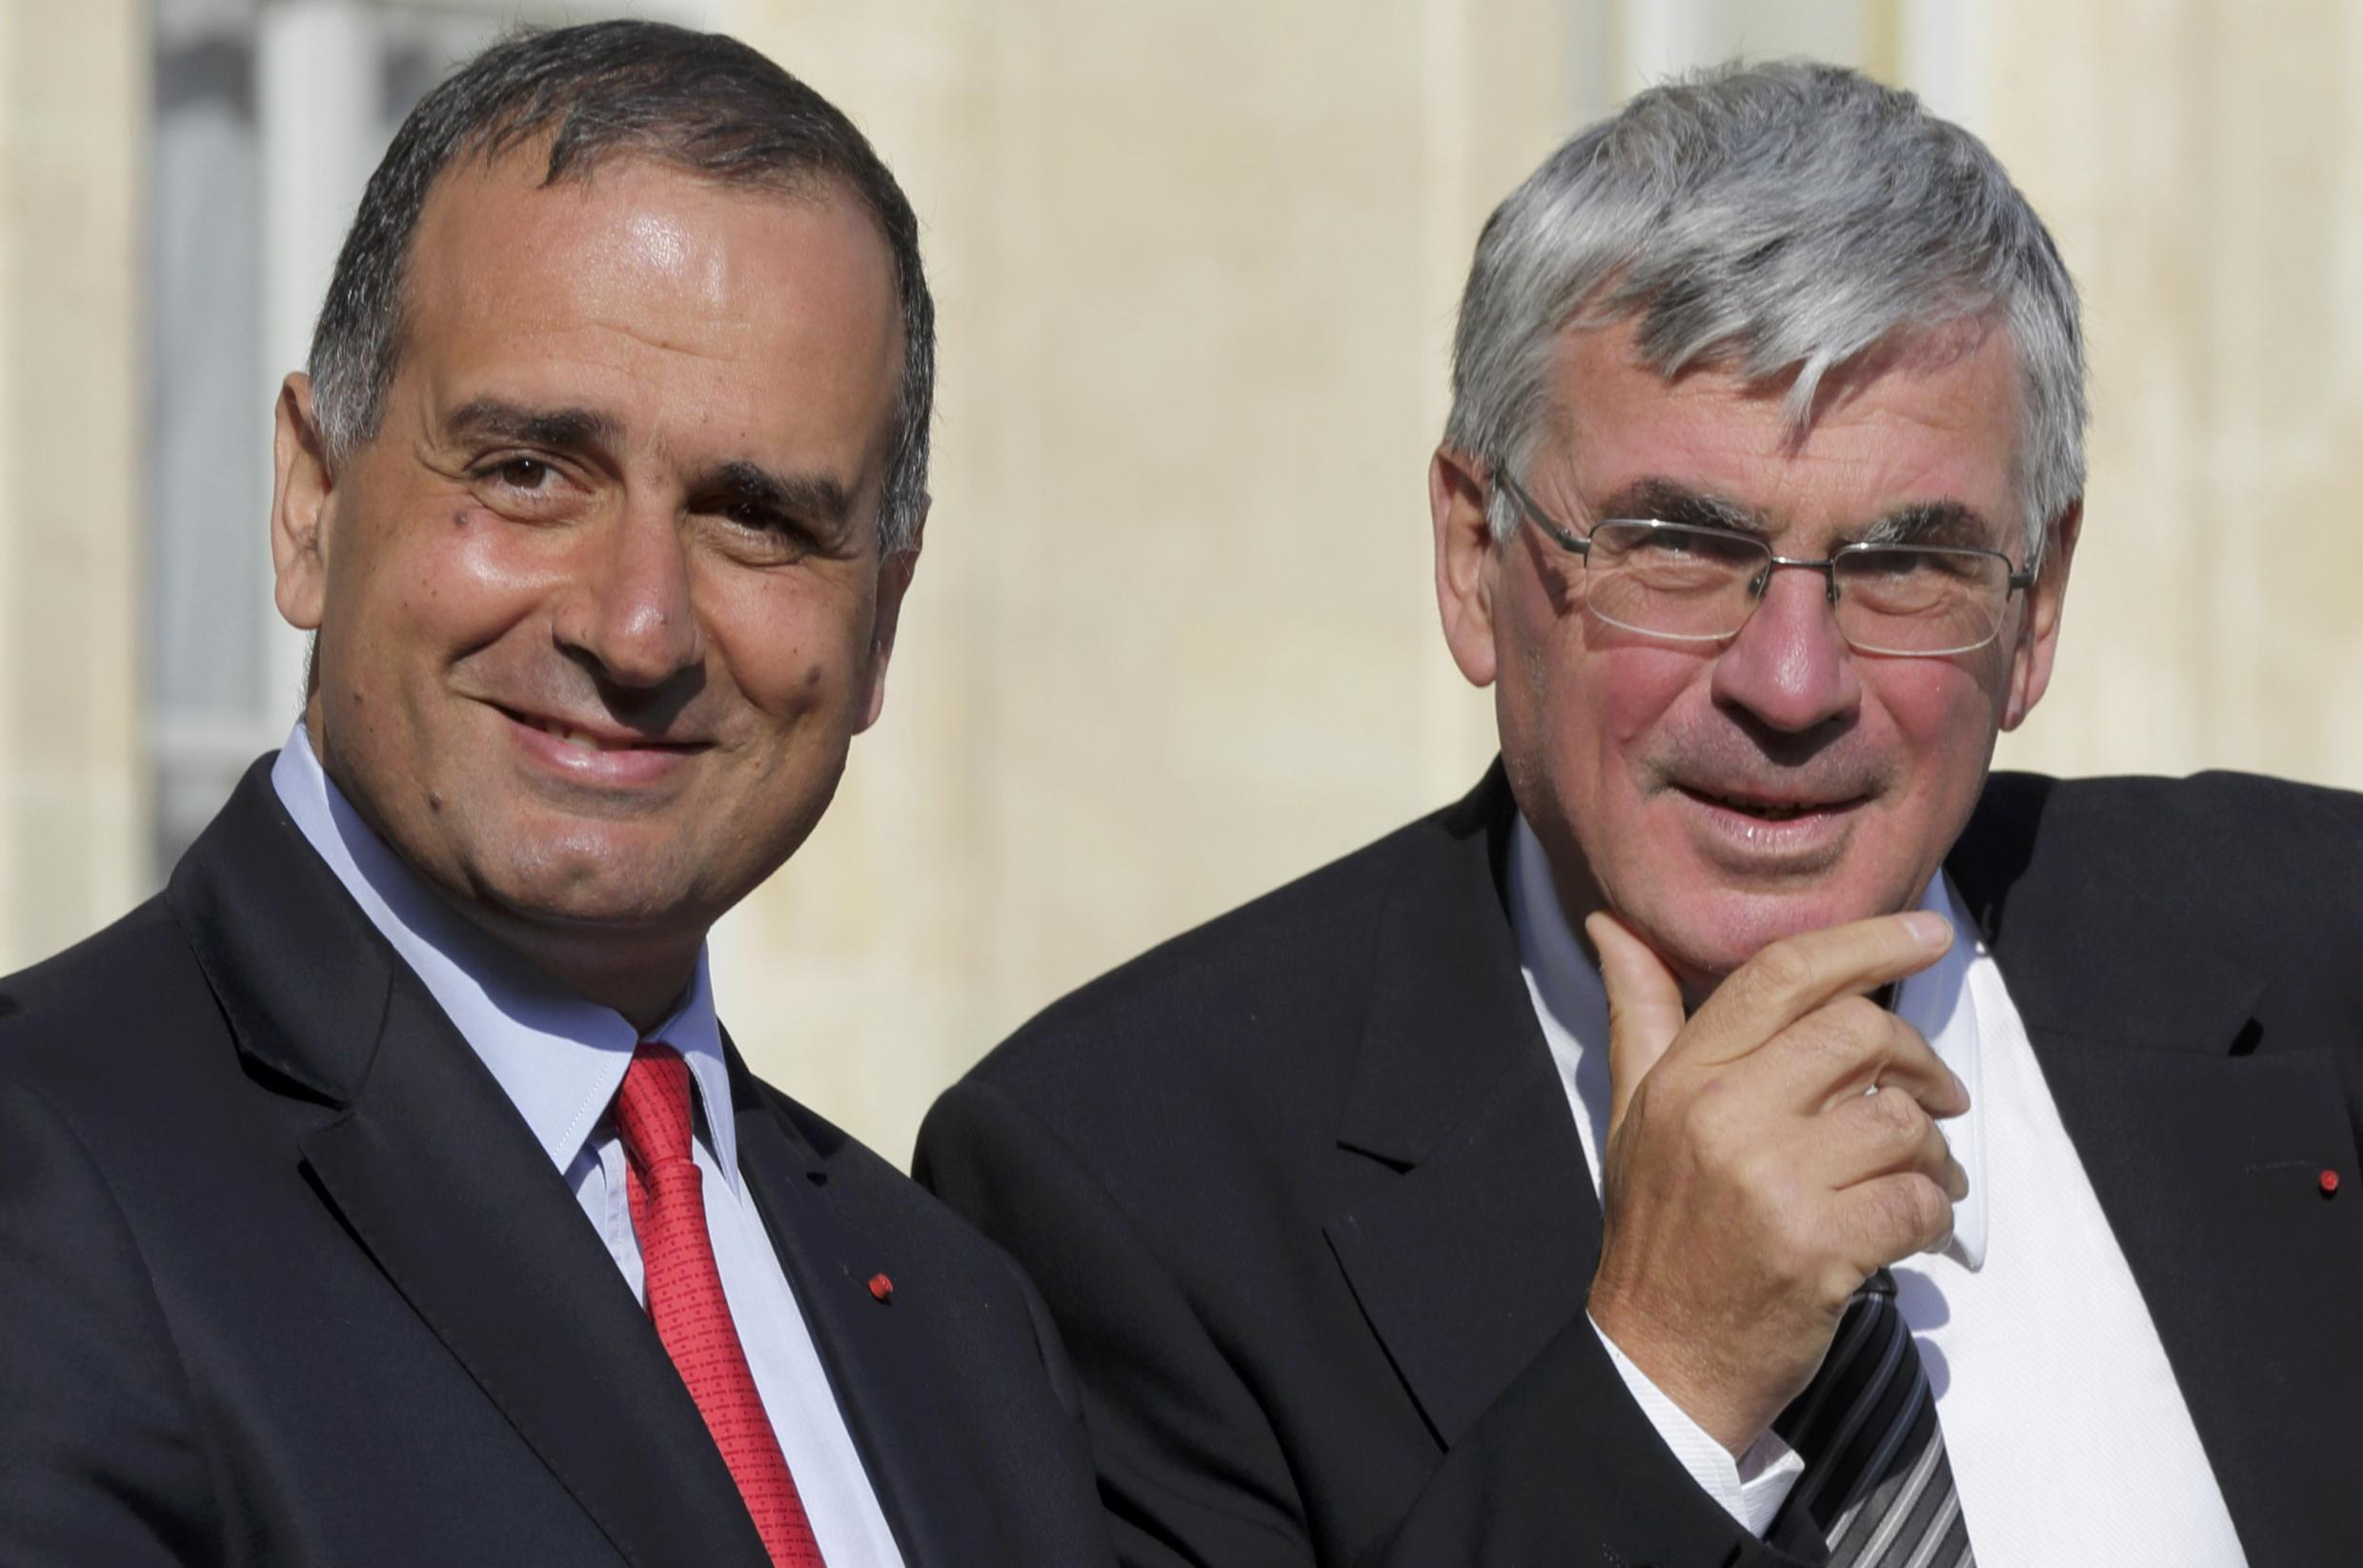 Marwan Lahoud, chief strategy of Airbus and Jean-Paul Herteman, chief executive officer of Safran at the Elysee Palace in Paris, 16 June 2014.